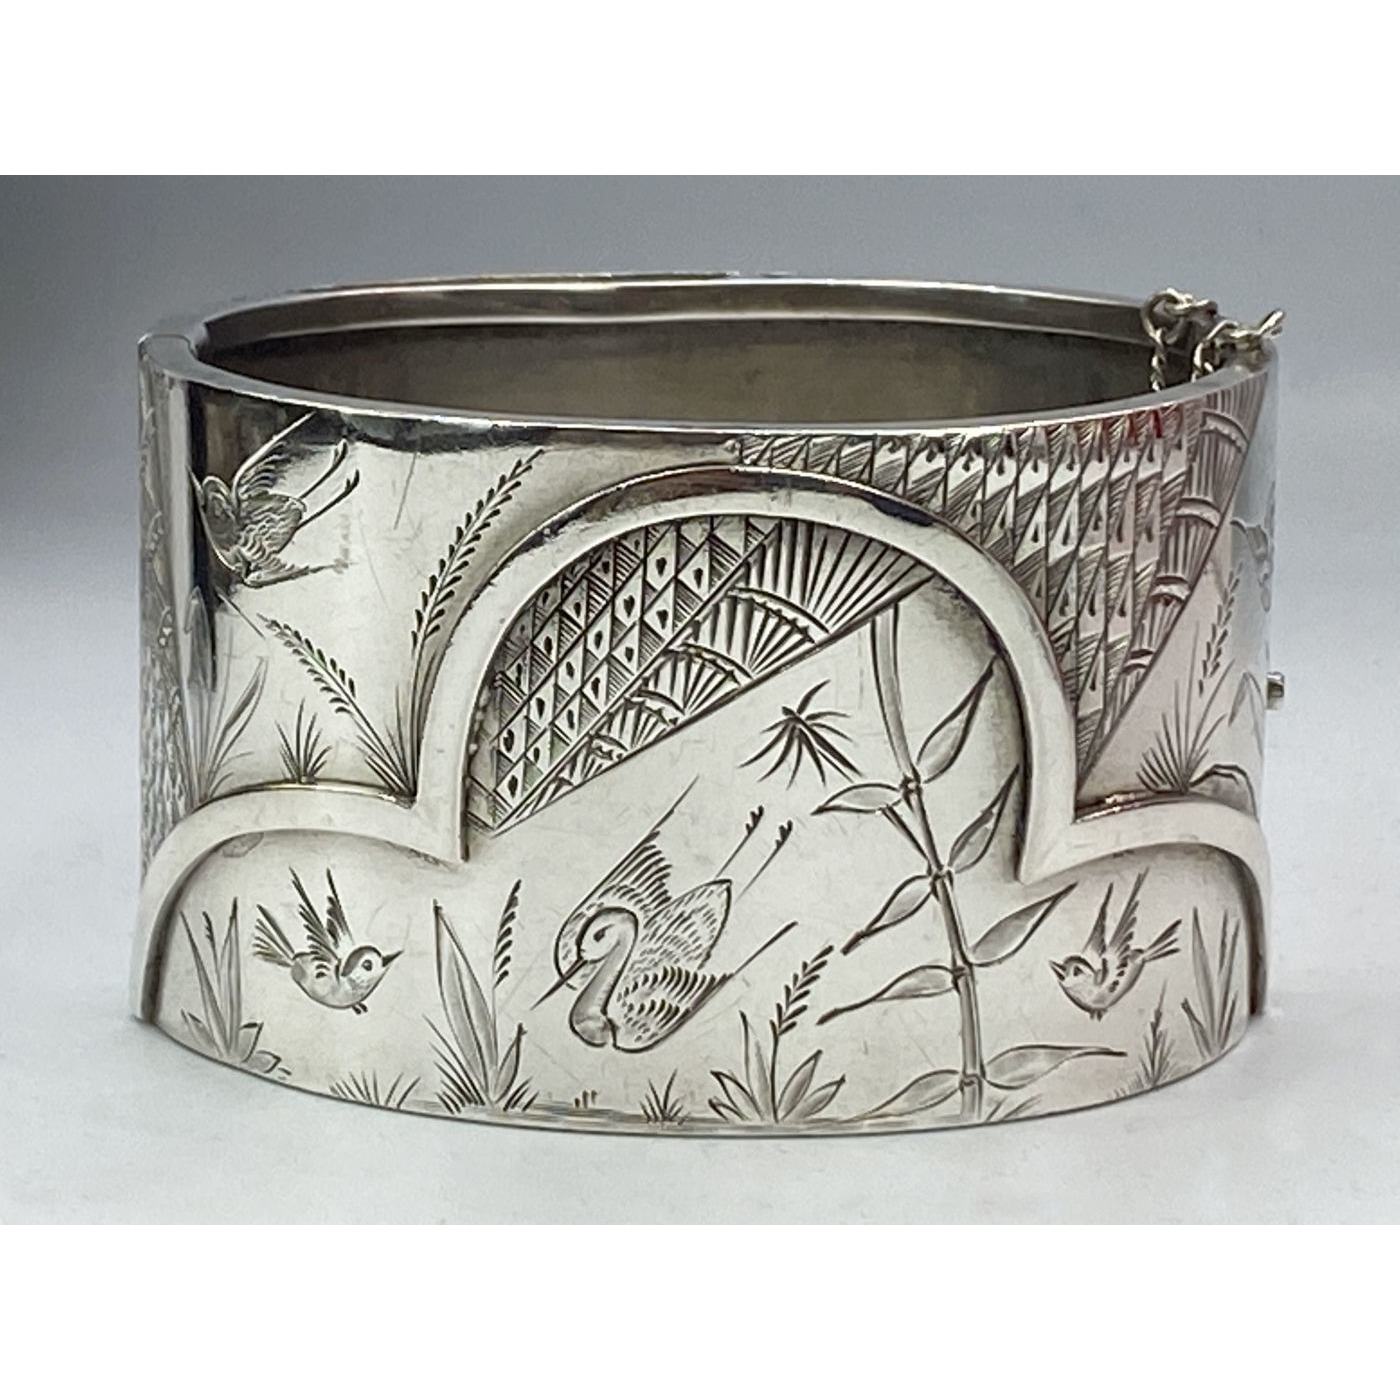 Unbelievable Swallows, Diving Birds, Cattails, Flowers Engraved Antique English Silver Bangle